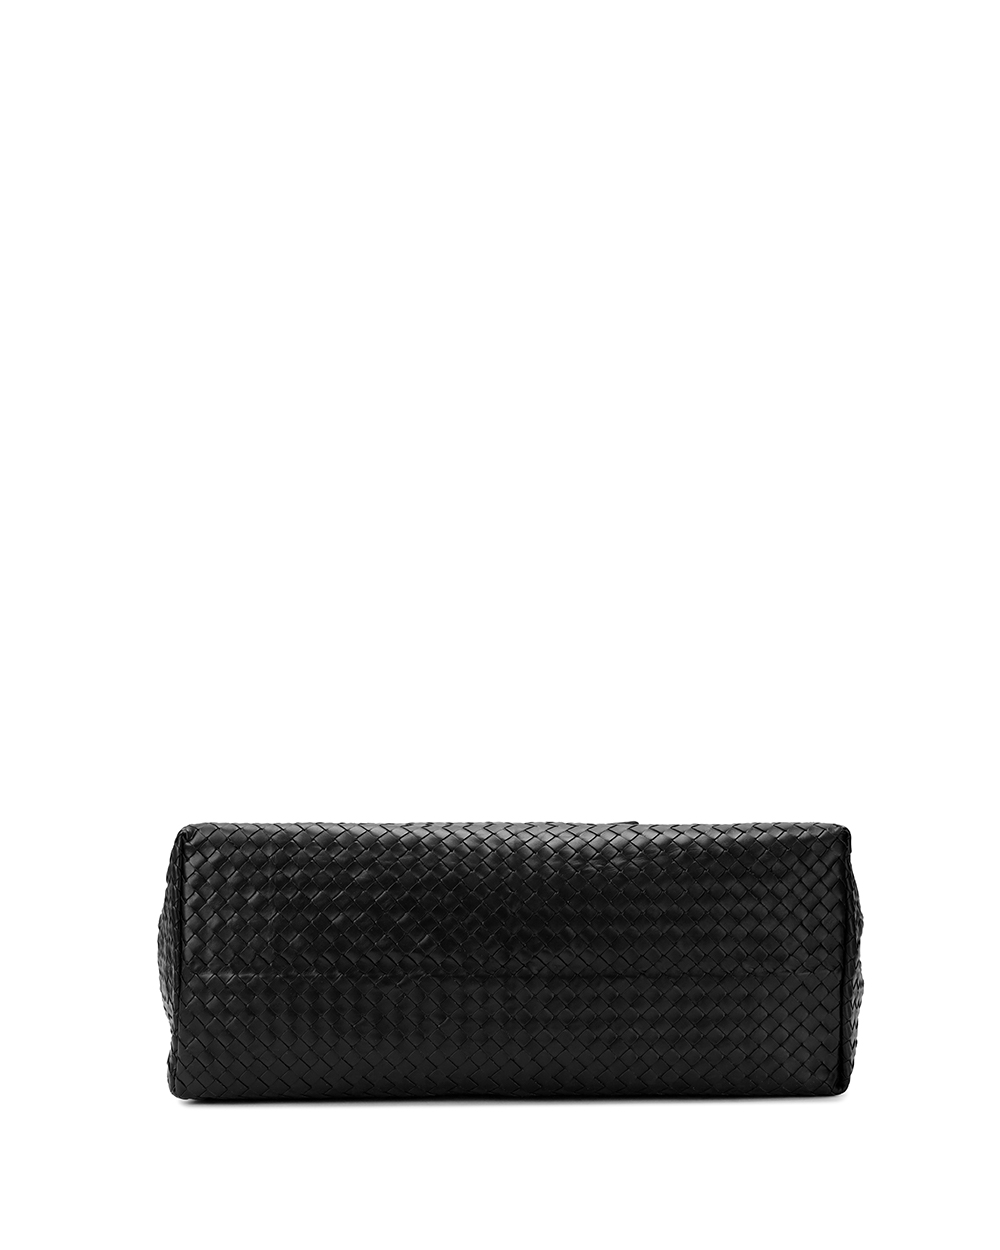 Woven Leather Cross-body Bag 2